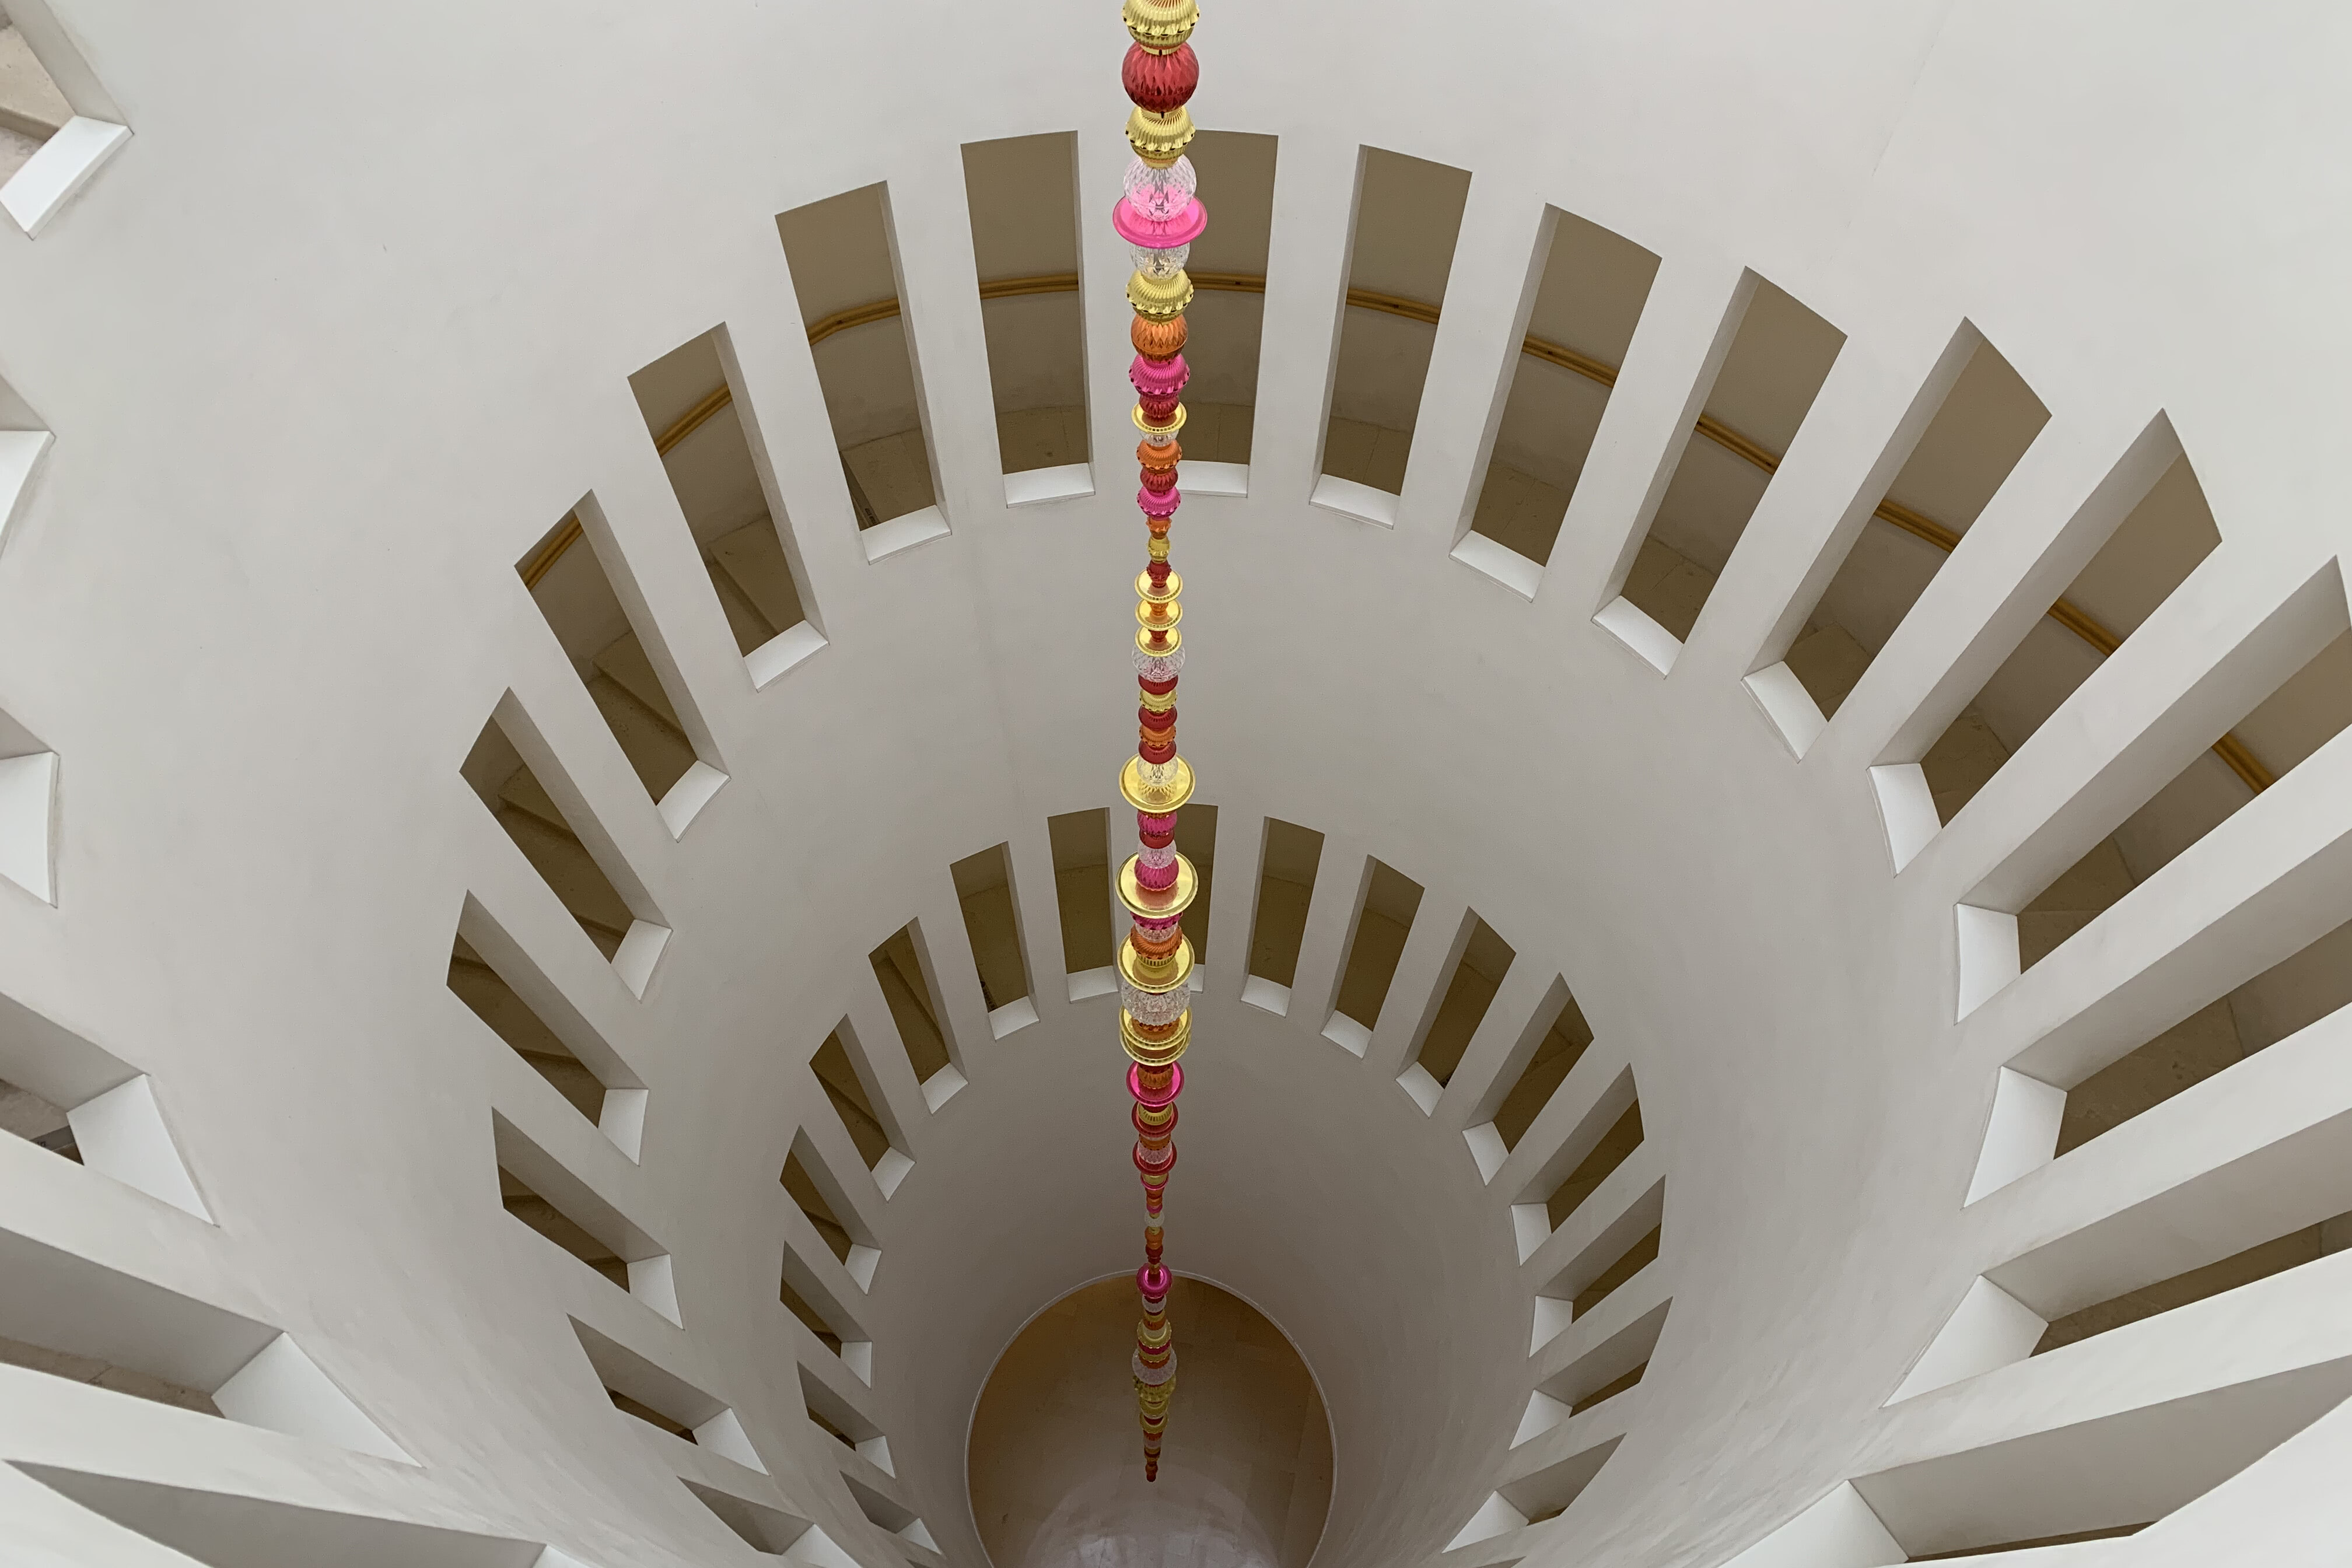 Spiral stairs at Leeum Museum